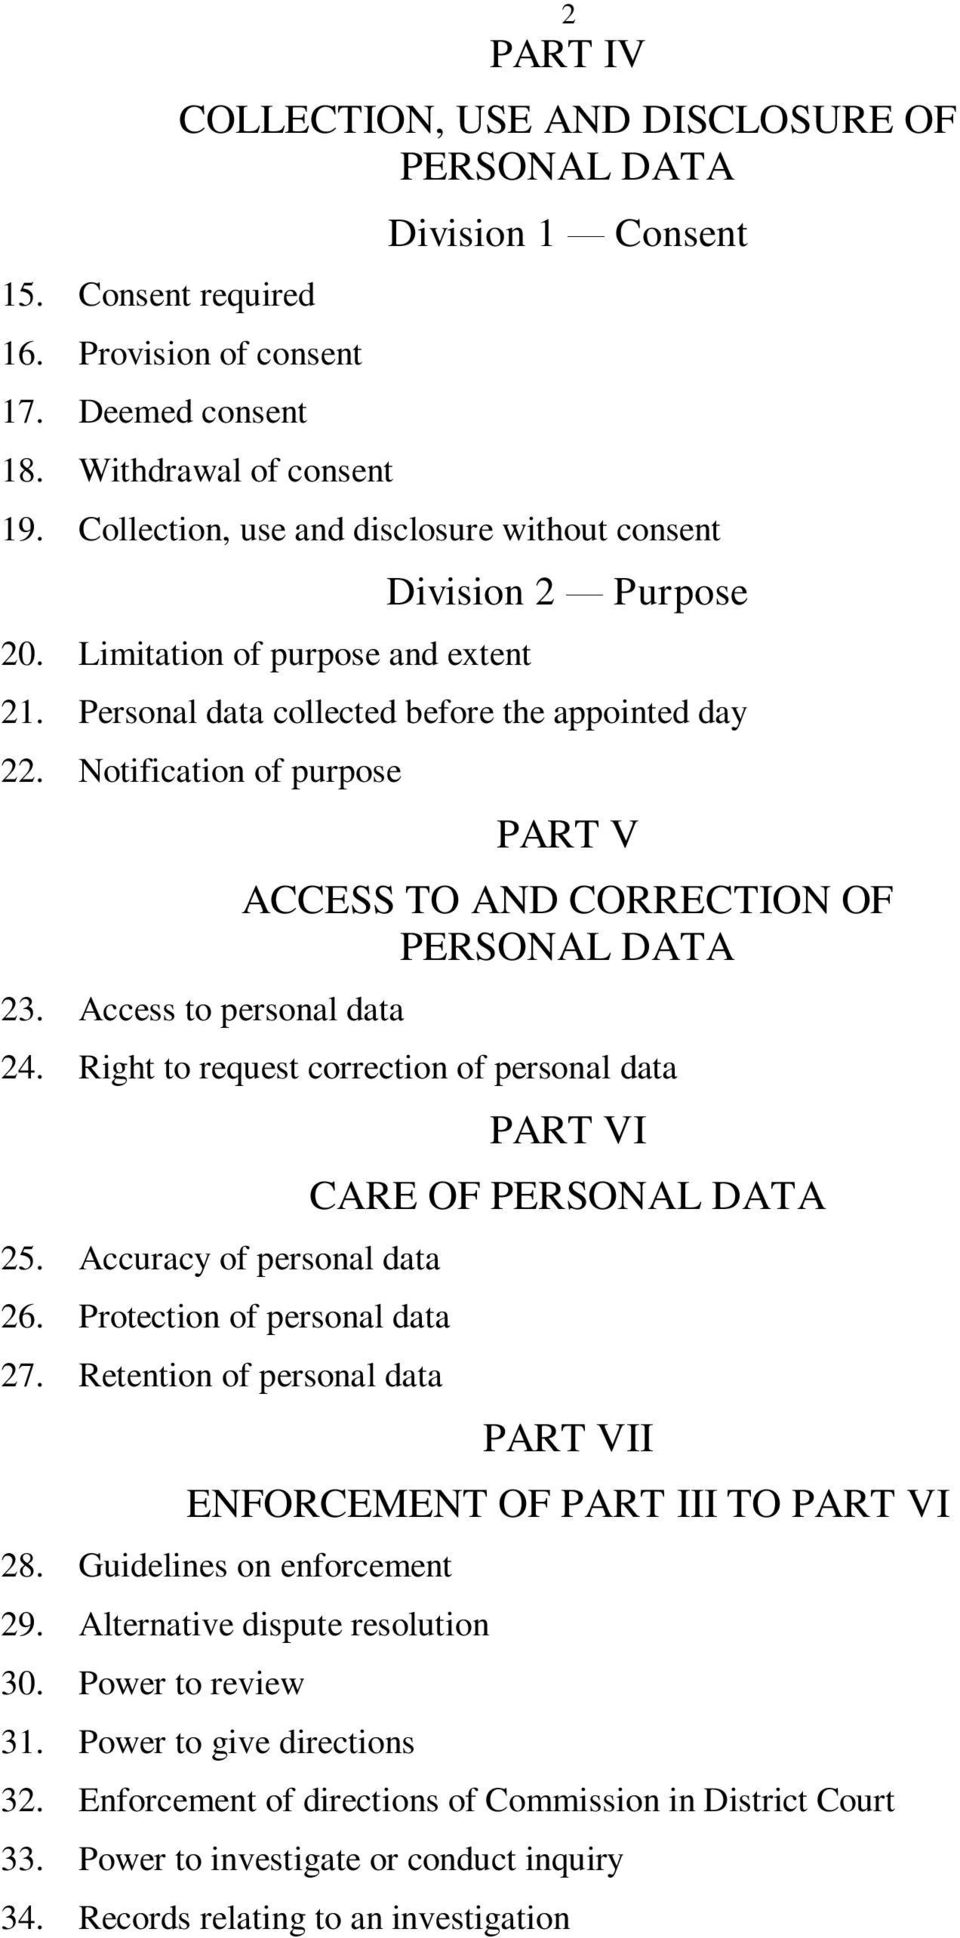 Access to personal data PART V ACCESS TO AND CORRECTION OF PERSONAL DATA 24. Right to request correction of personal data 2. Accuracy of personal data 26. Protection of personal data 27.